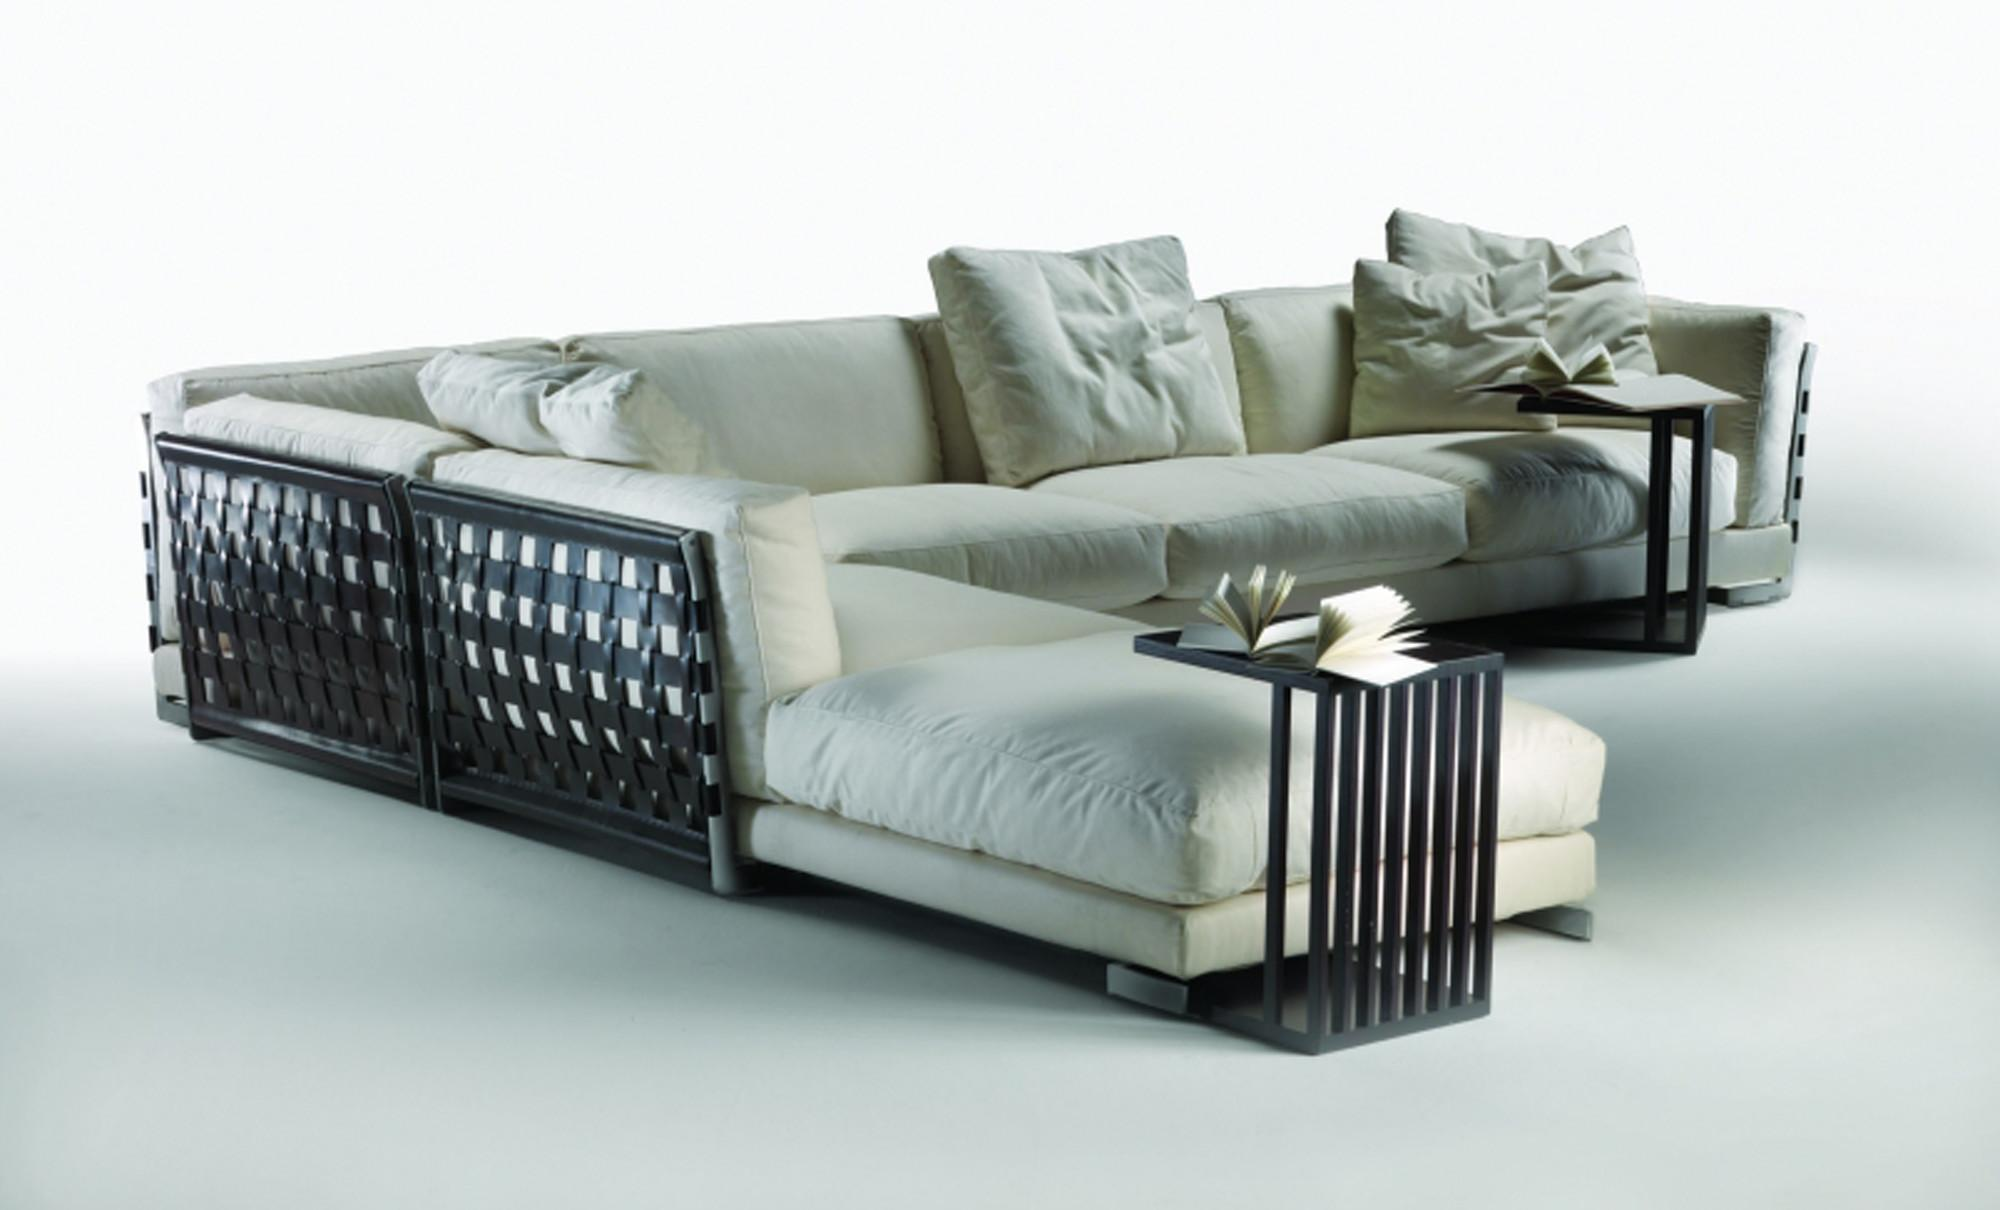 Cestone Sofas Fanuli Furniture